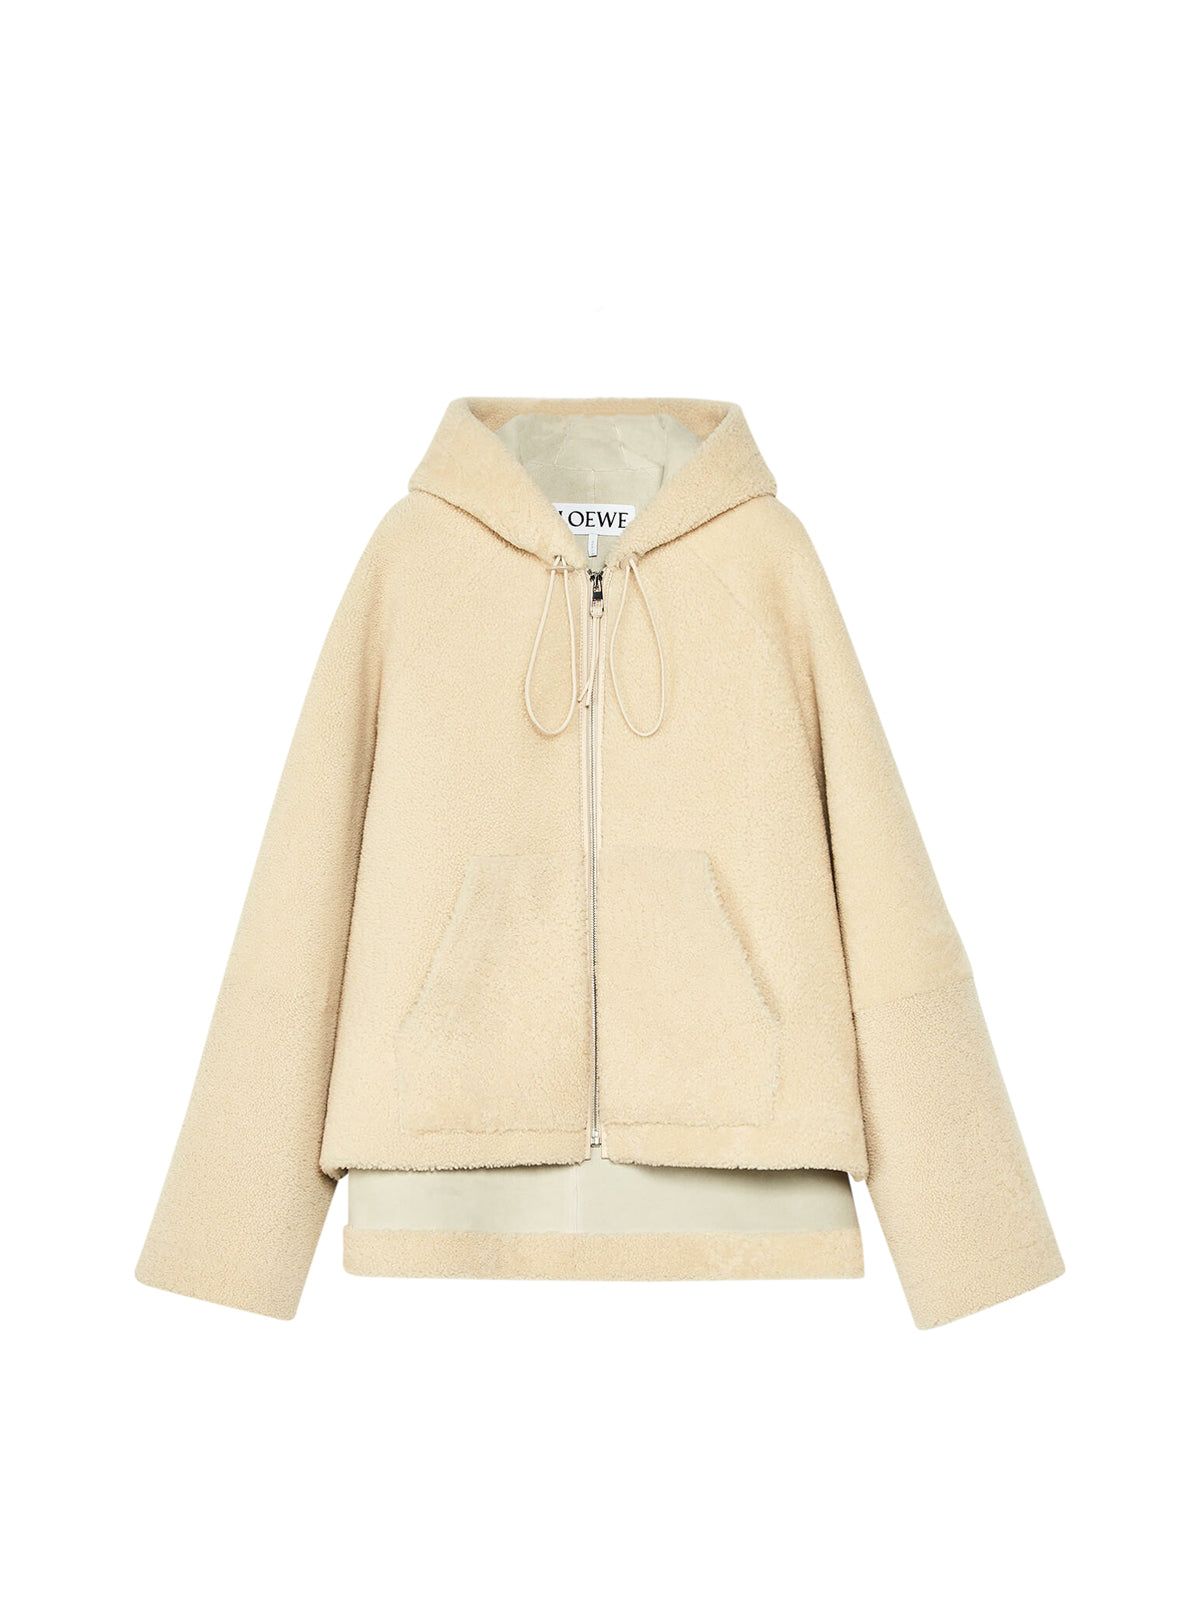 Hooded zip jacket in shearling